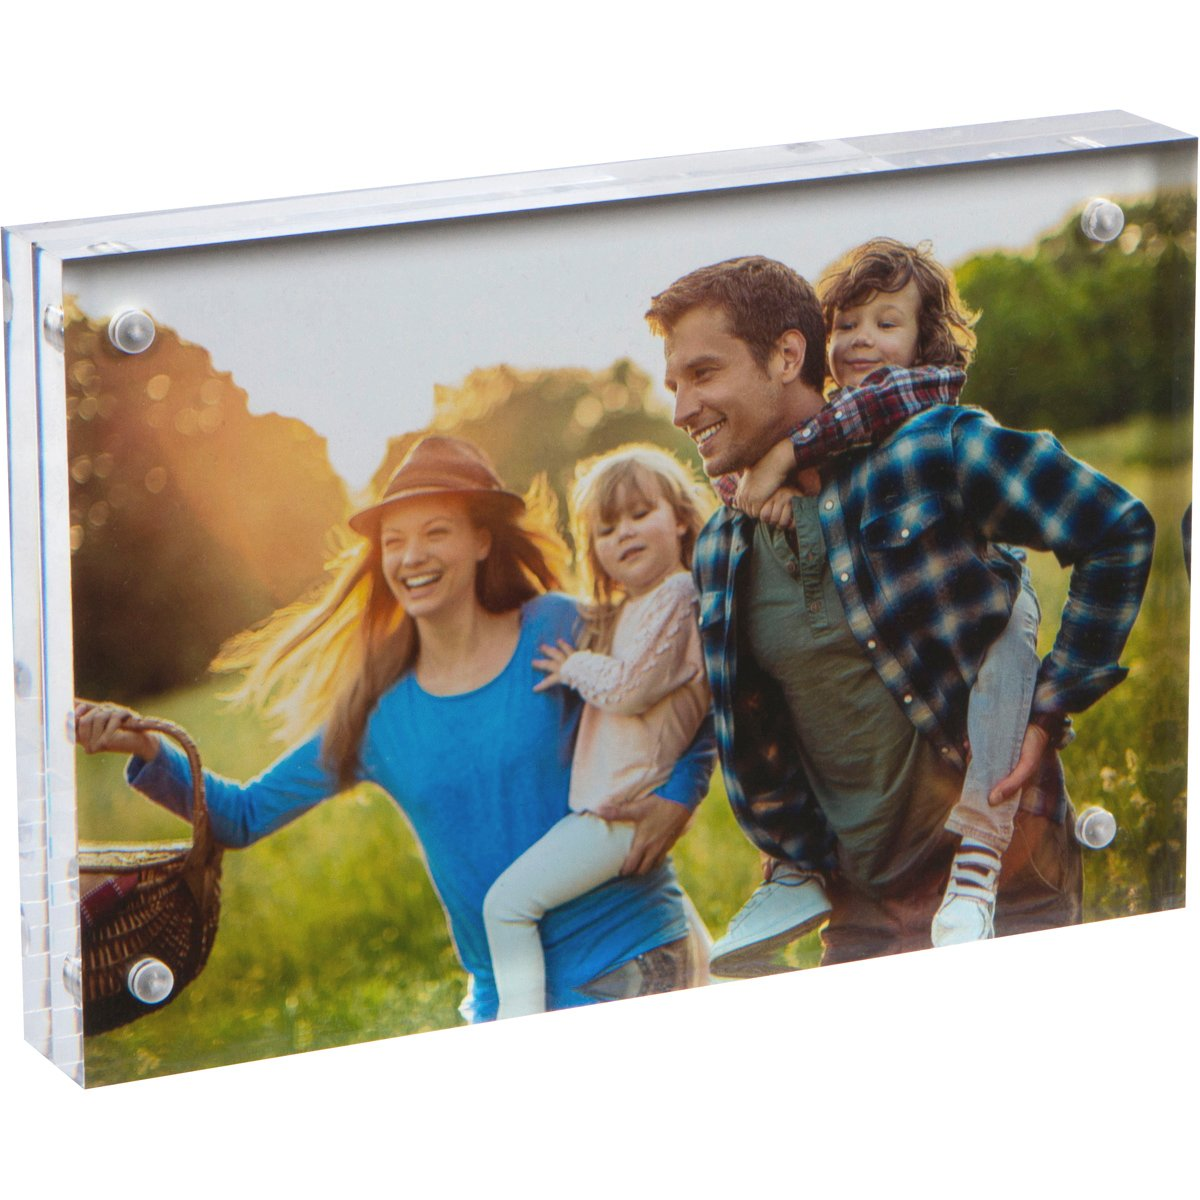 SimbaLux Magnetic Acrylic Picture Photo Frame 4x6 inches, Clear Glass Like, Double Sided Frameless Desktop Floating Display, Free Standing, Easy Change, for Family, Postcards, 4 by 6, 2cm Thick 4 by 6